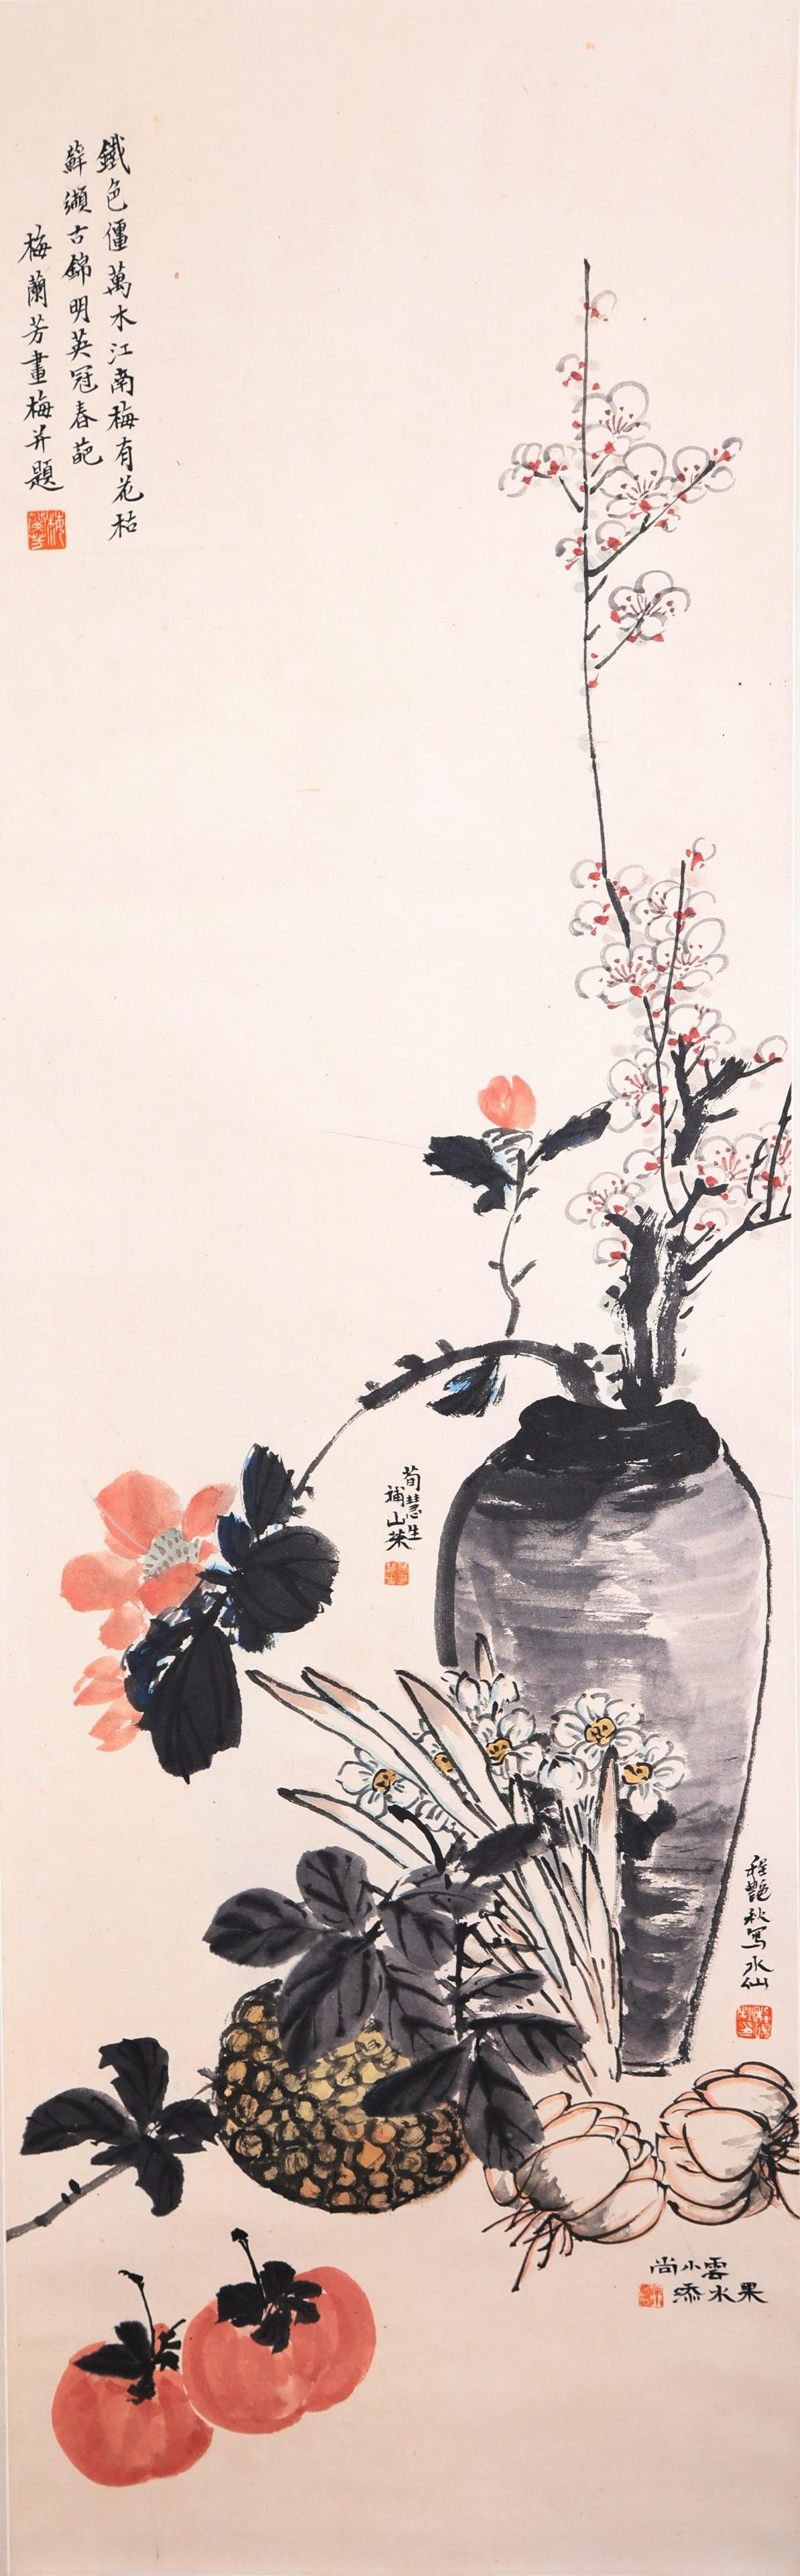 Mei Lanfang - Flower and Vase Painting